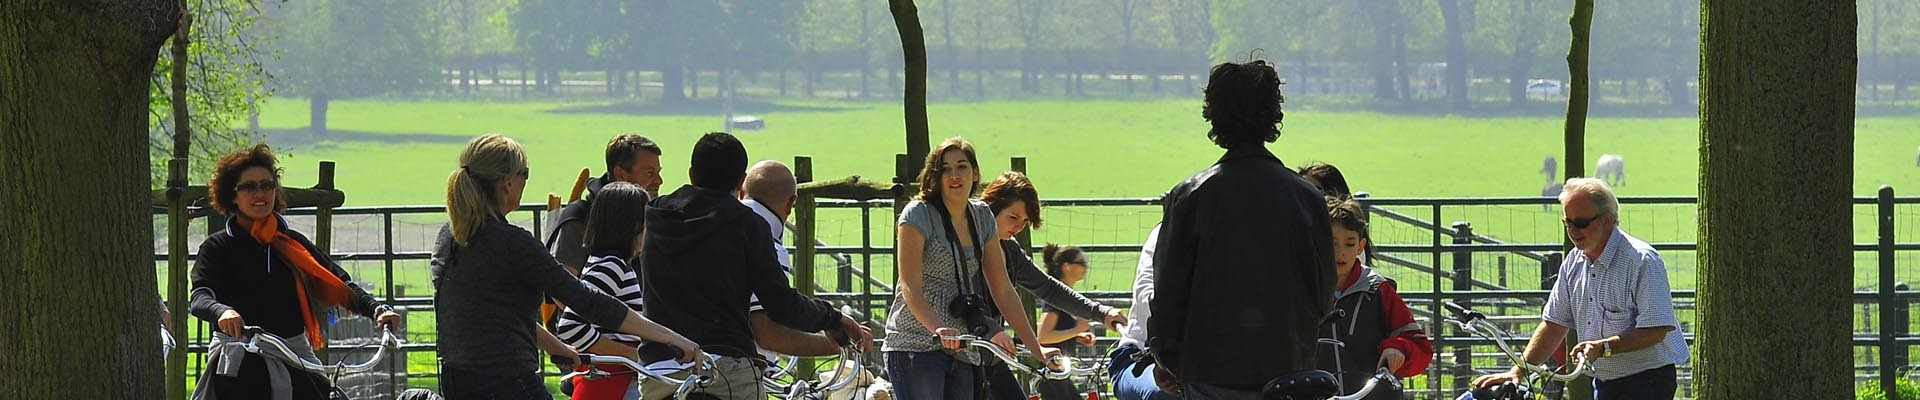 Bicycle rides in the park of the Gardens of Versailles